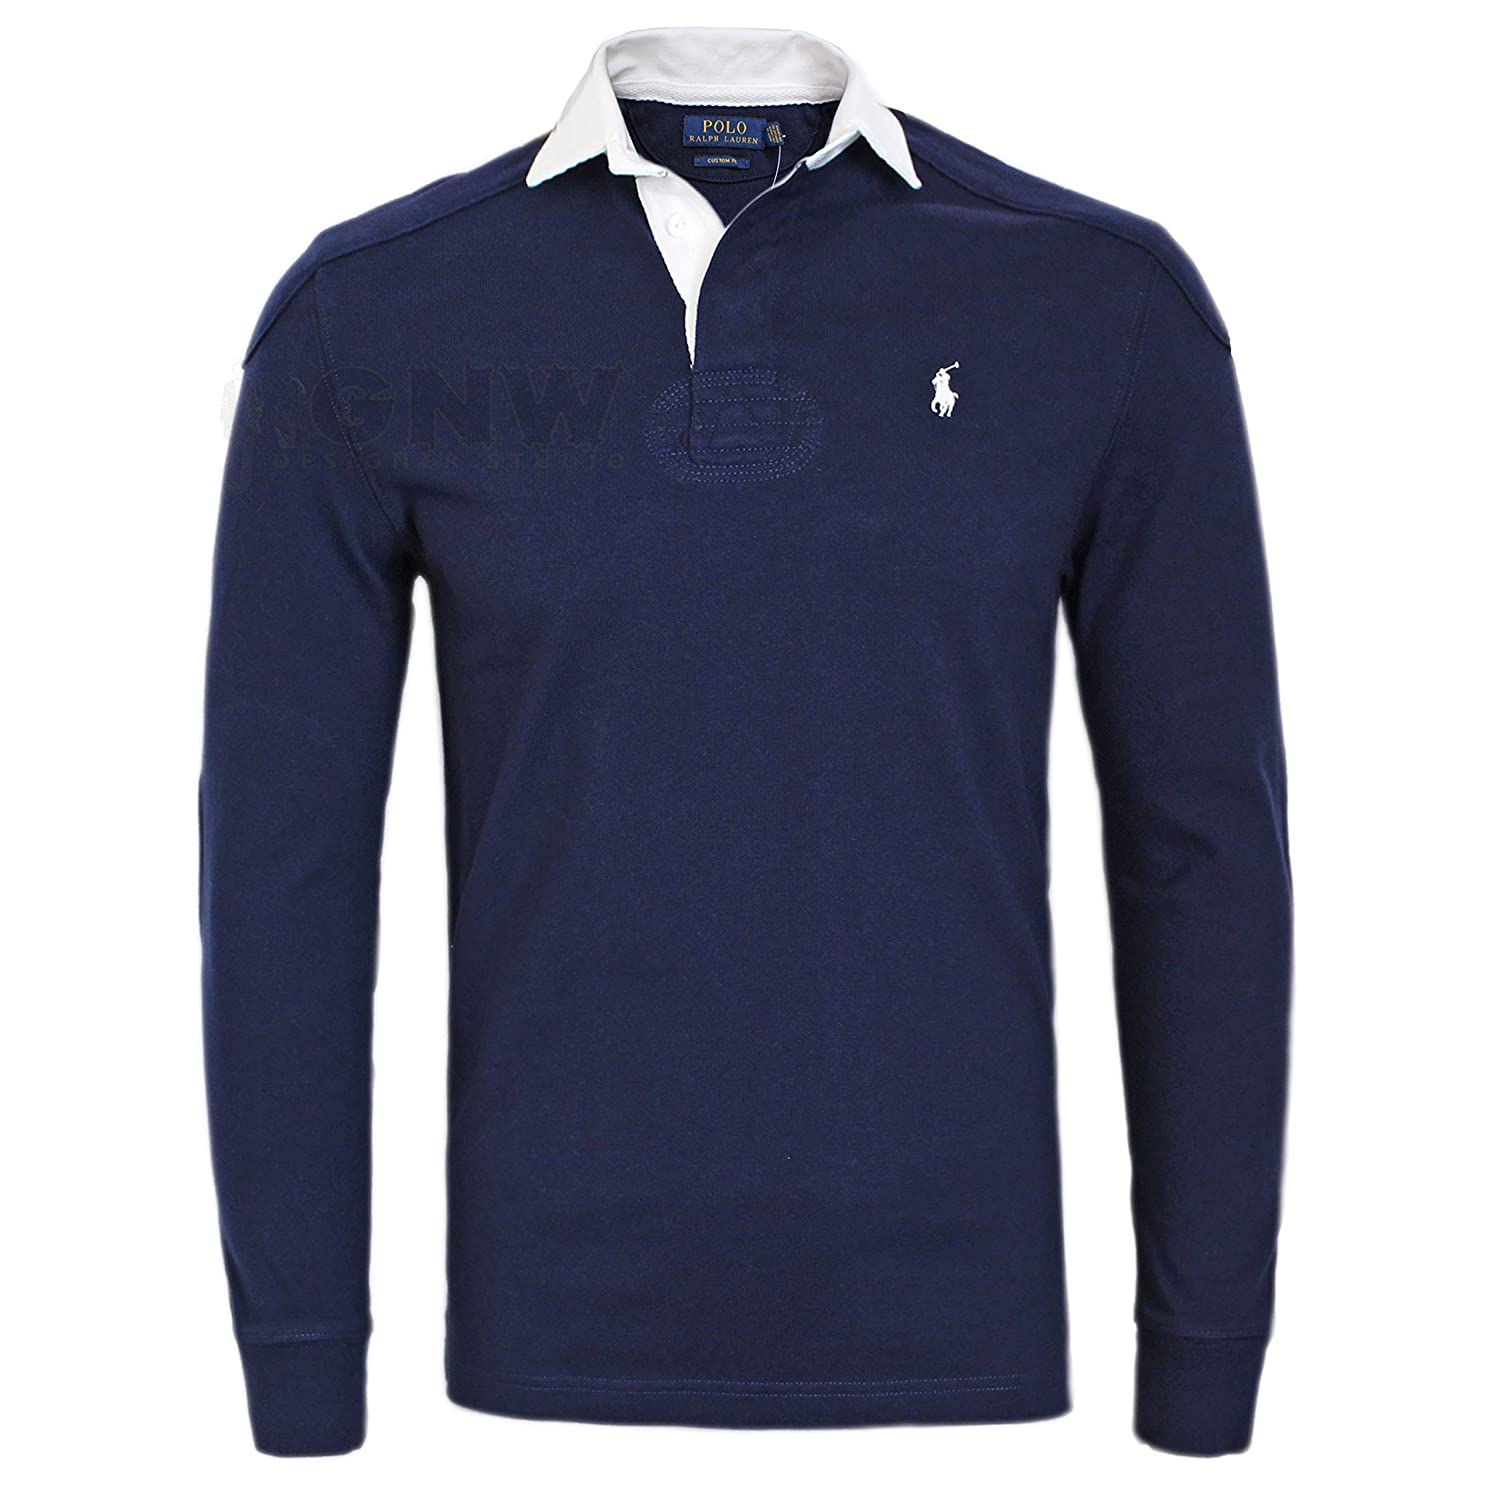 Ralph Lauren Polo Men Luxury Double Stitched Rugby Shirt/Top Custom Fit